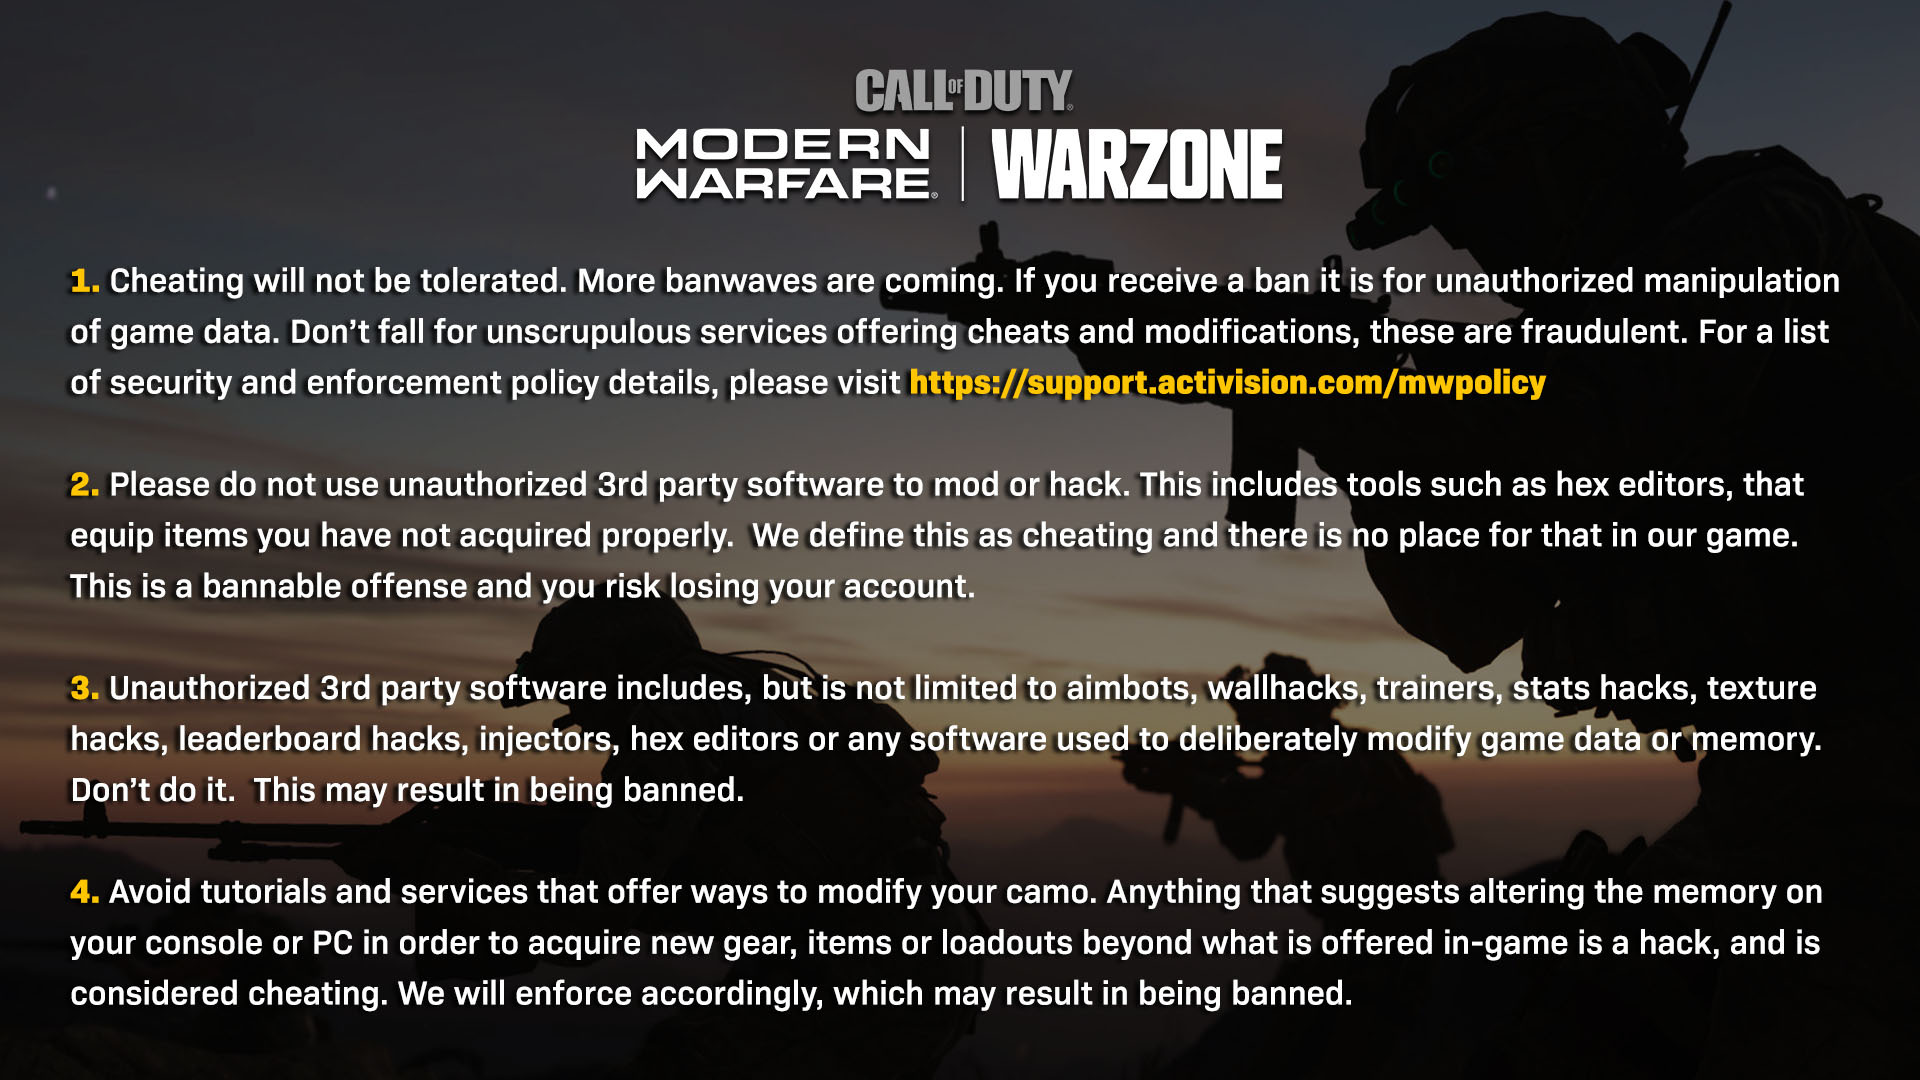 Infinity Ward's response to hackers in Warzone.